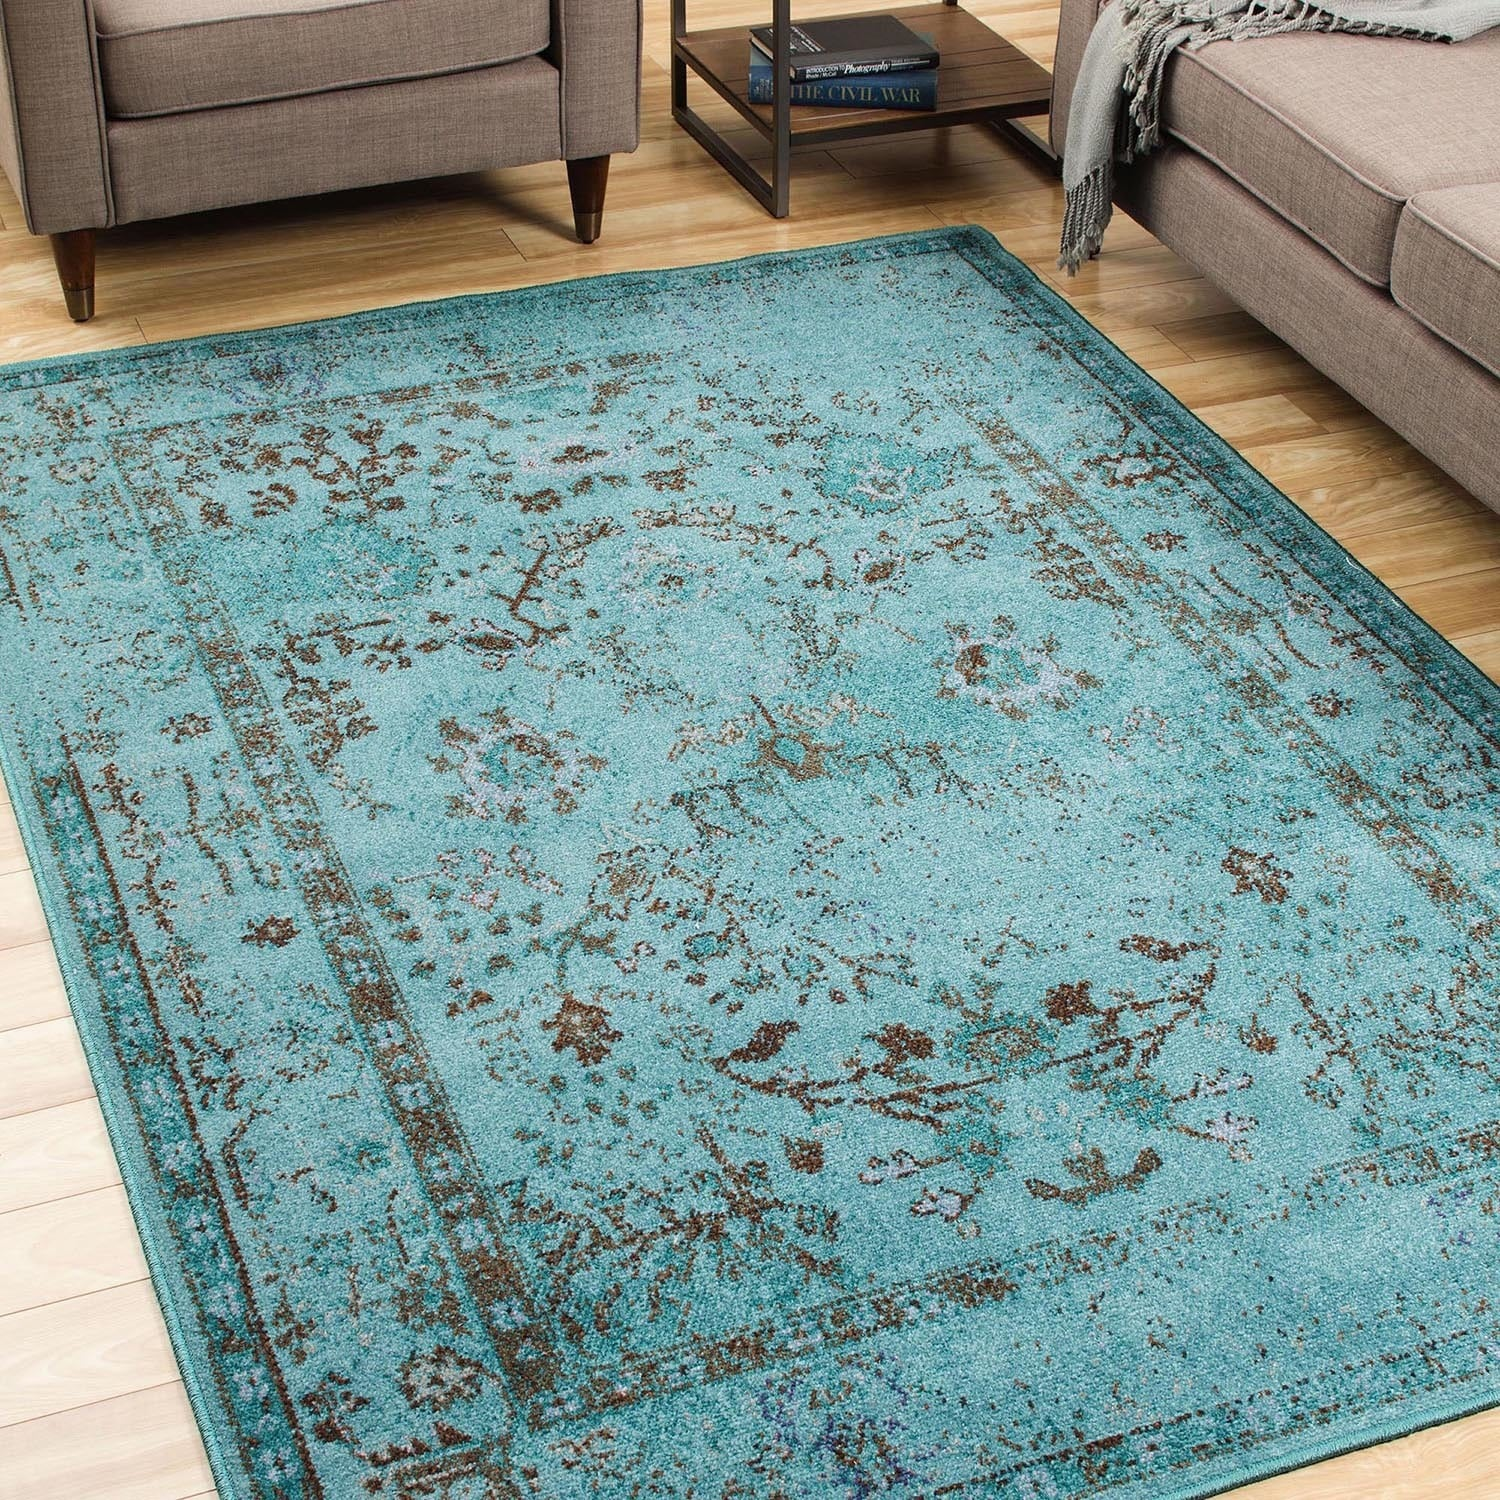 Shop Teal/ Grey Area Rug (5' X 7'6)